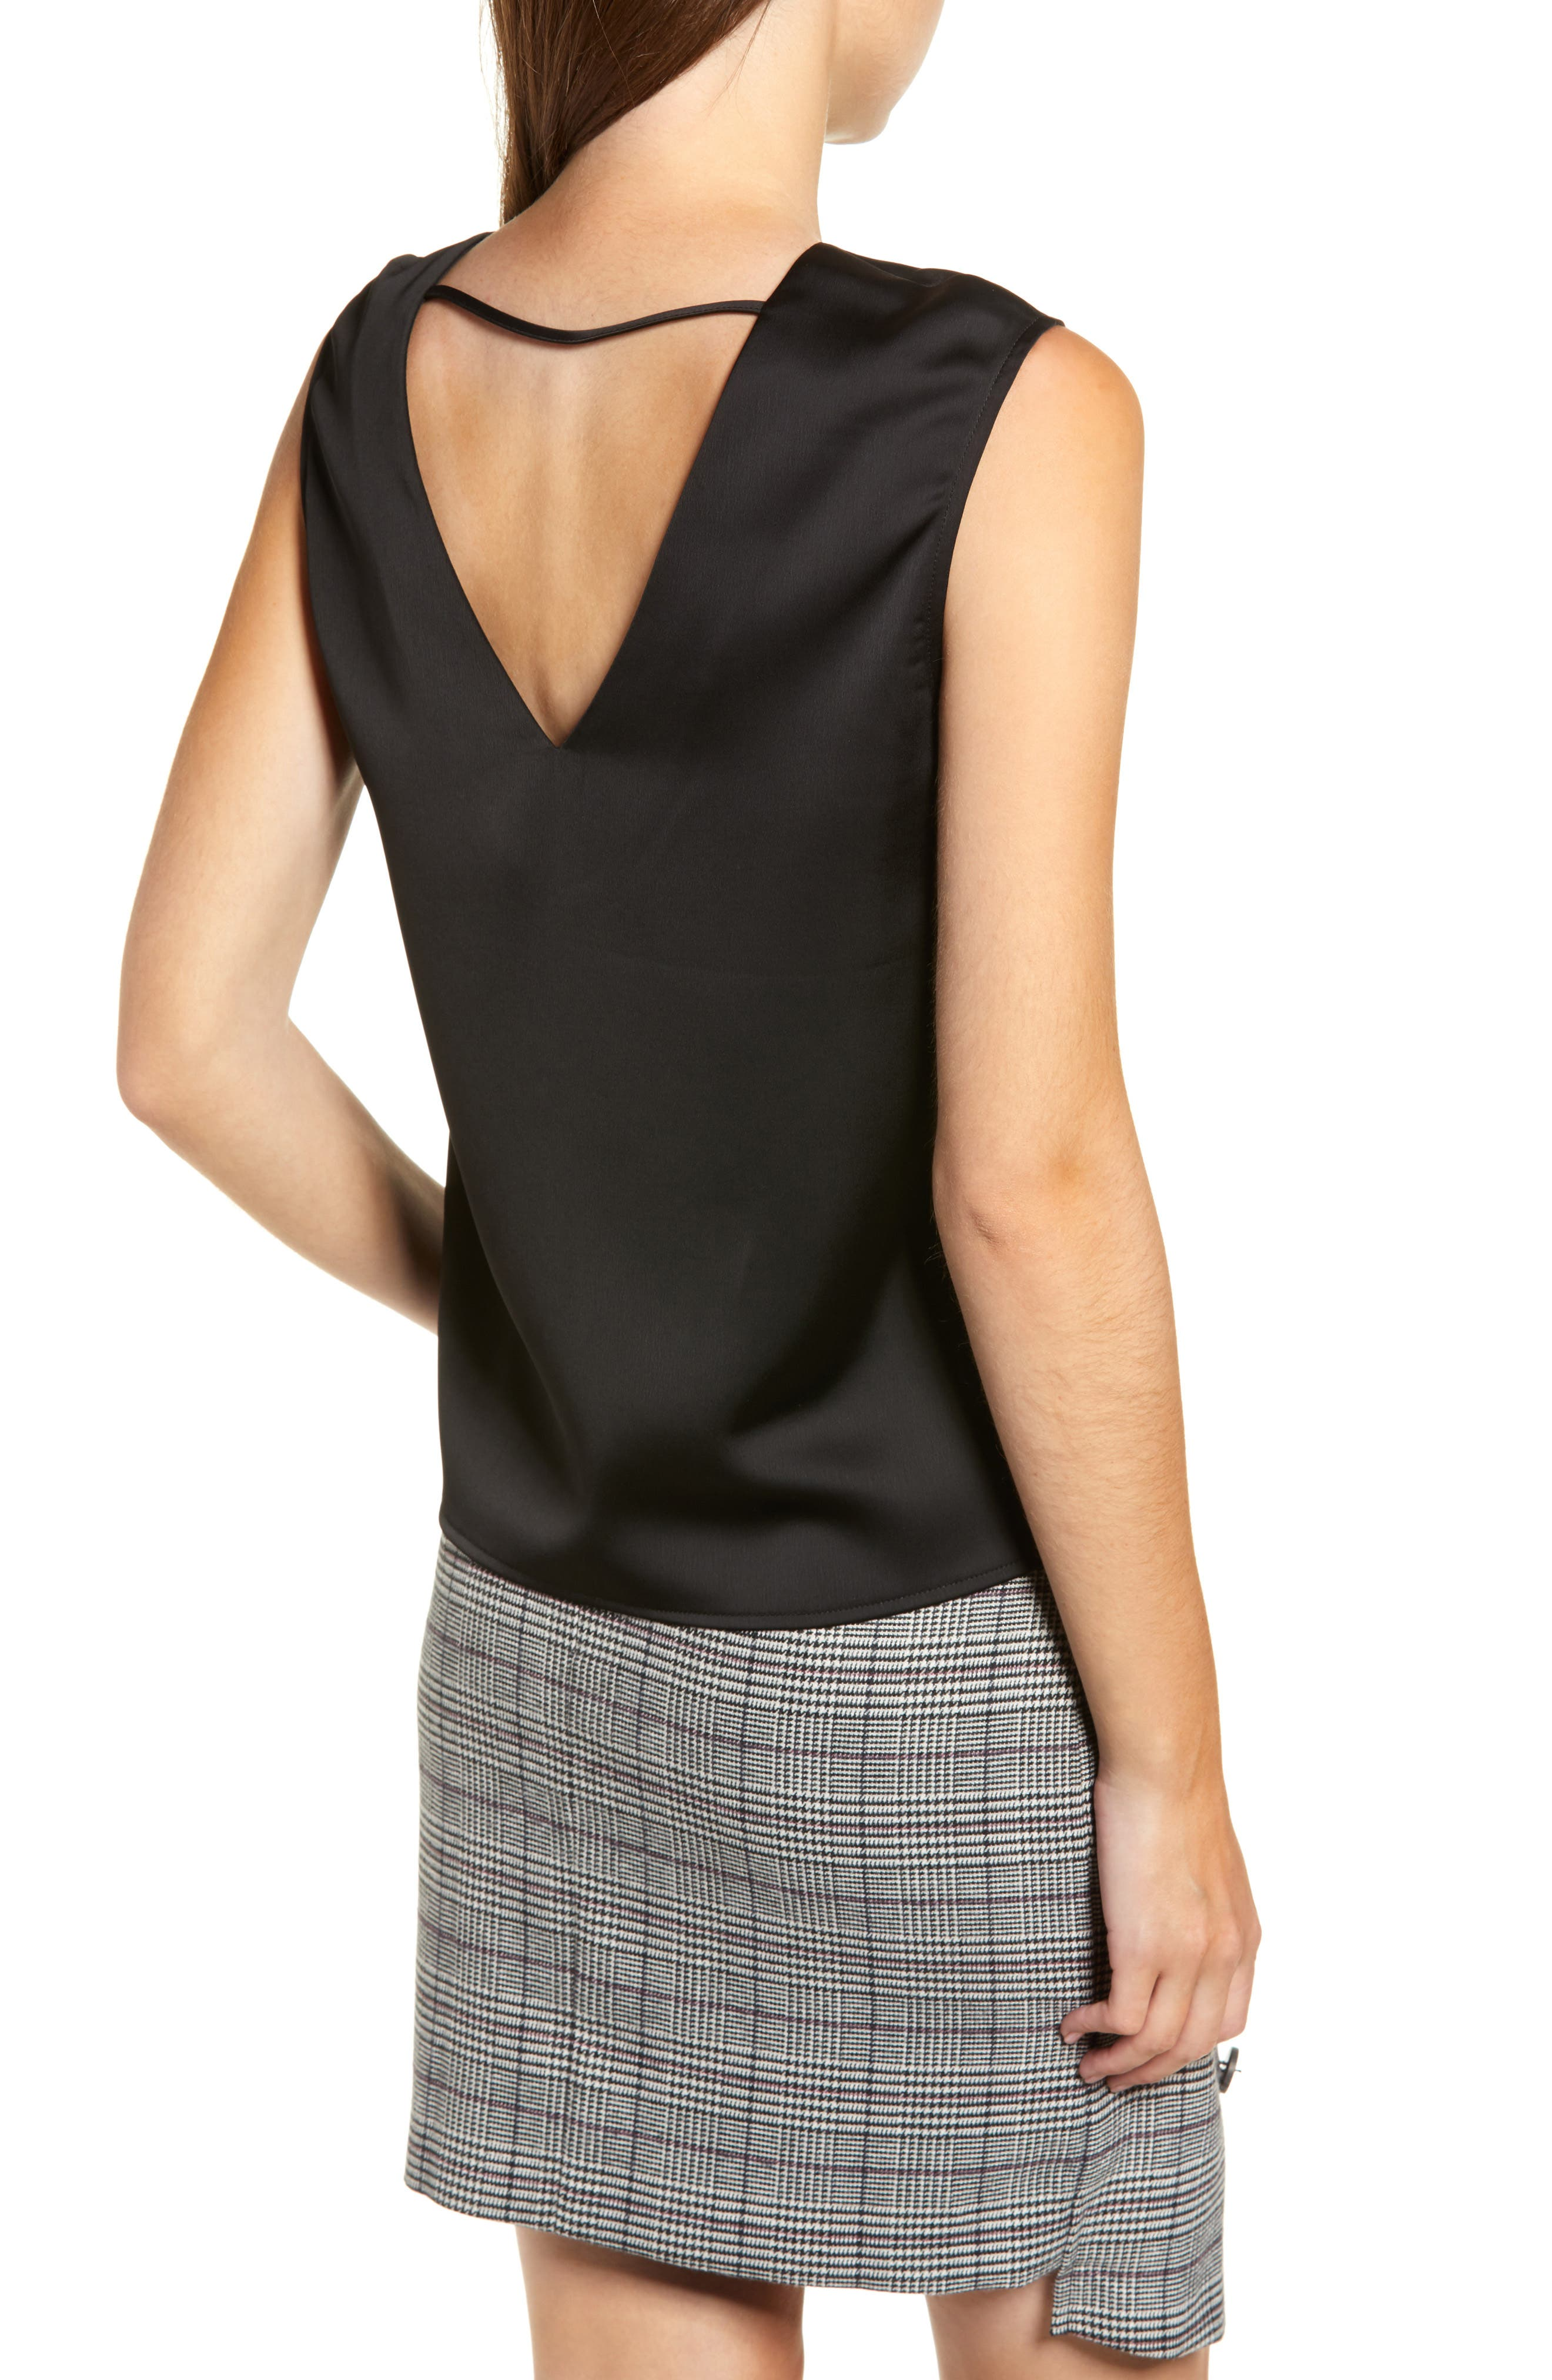 Chriselle Lim Veronica V-Neck Tank,                             Alternate thumbnail 3, color,                             001